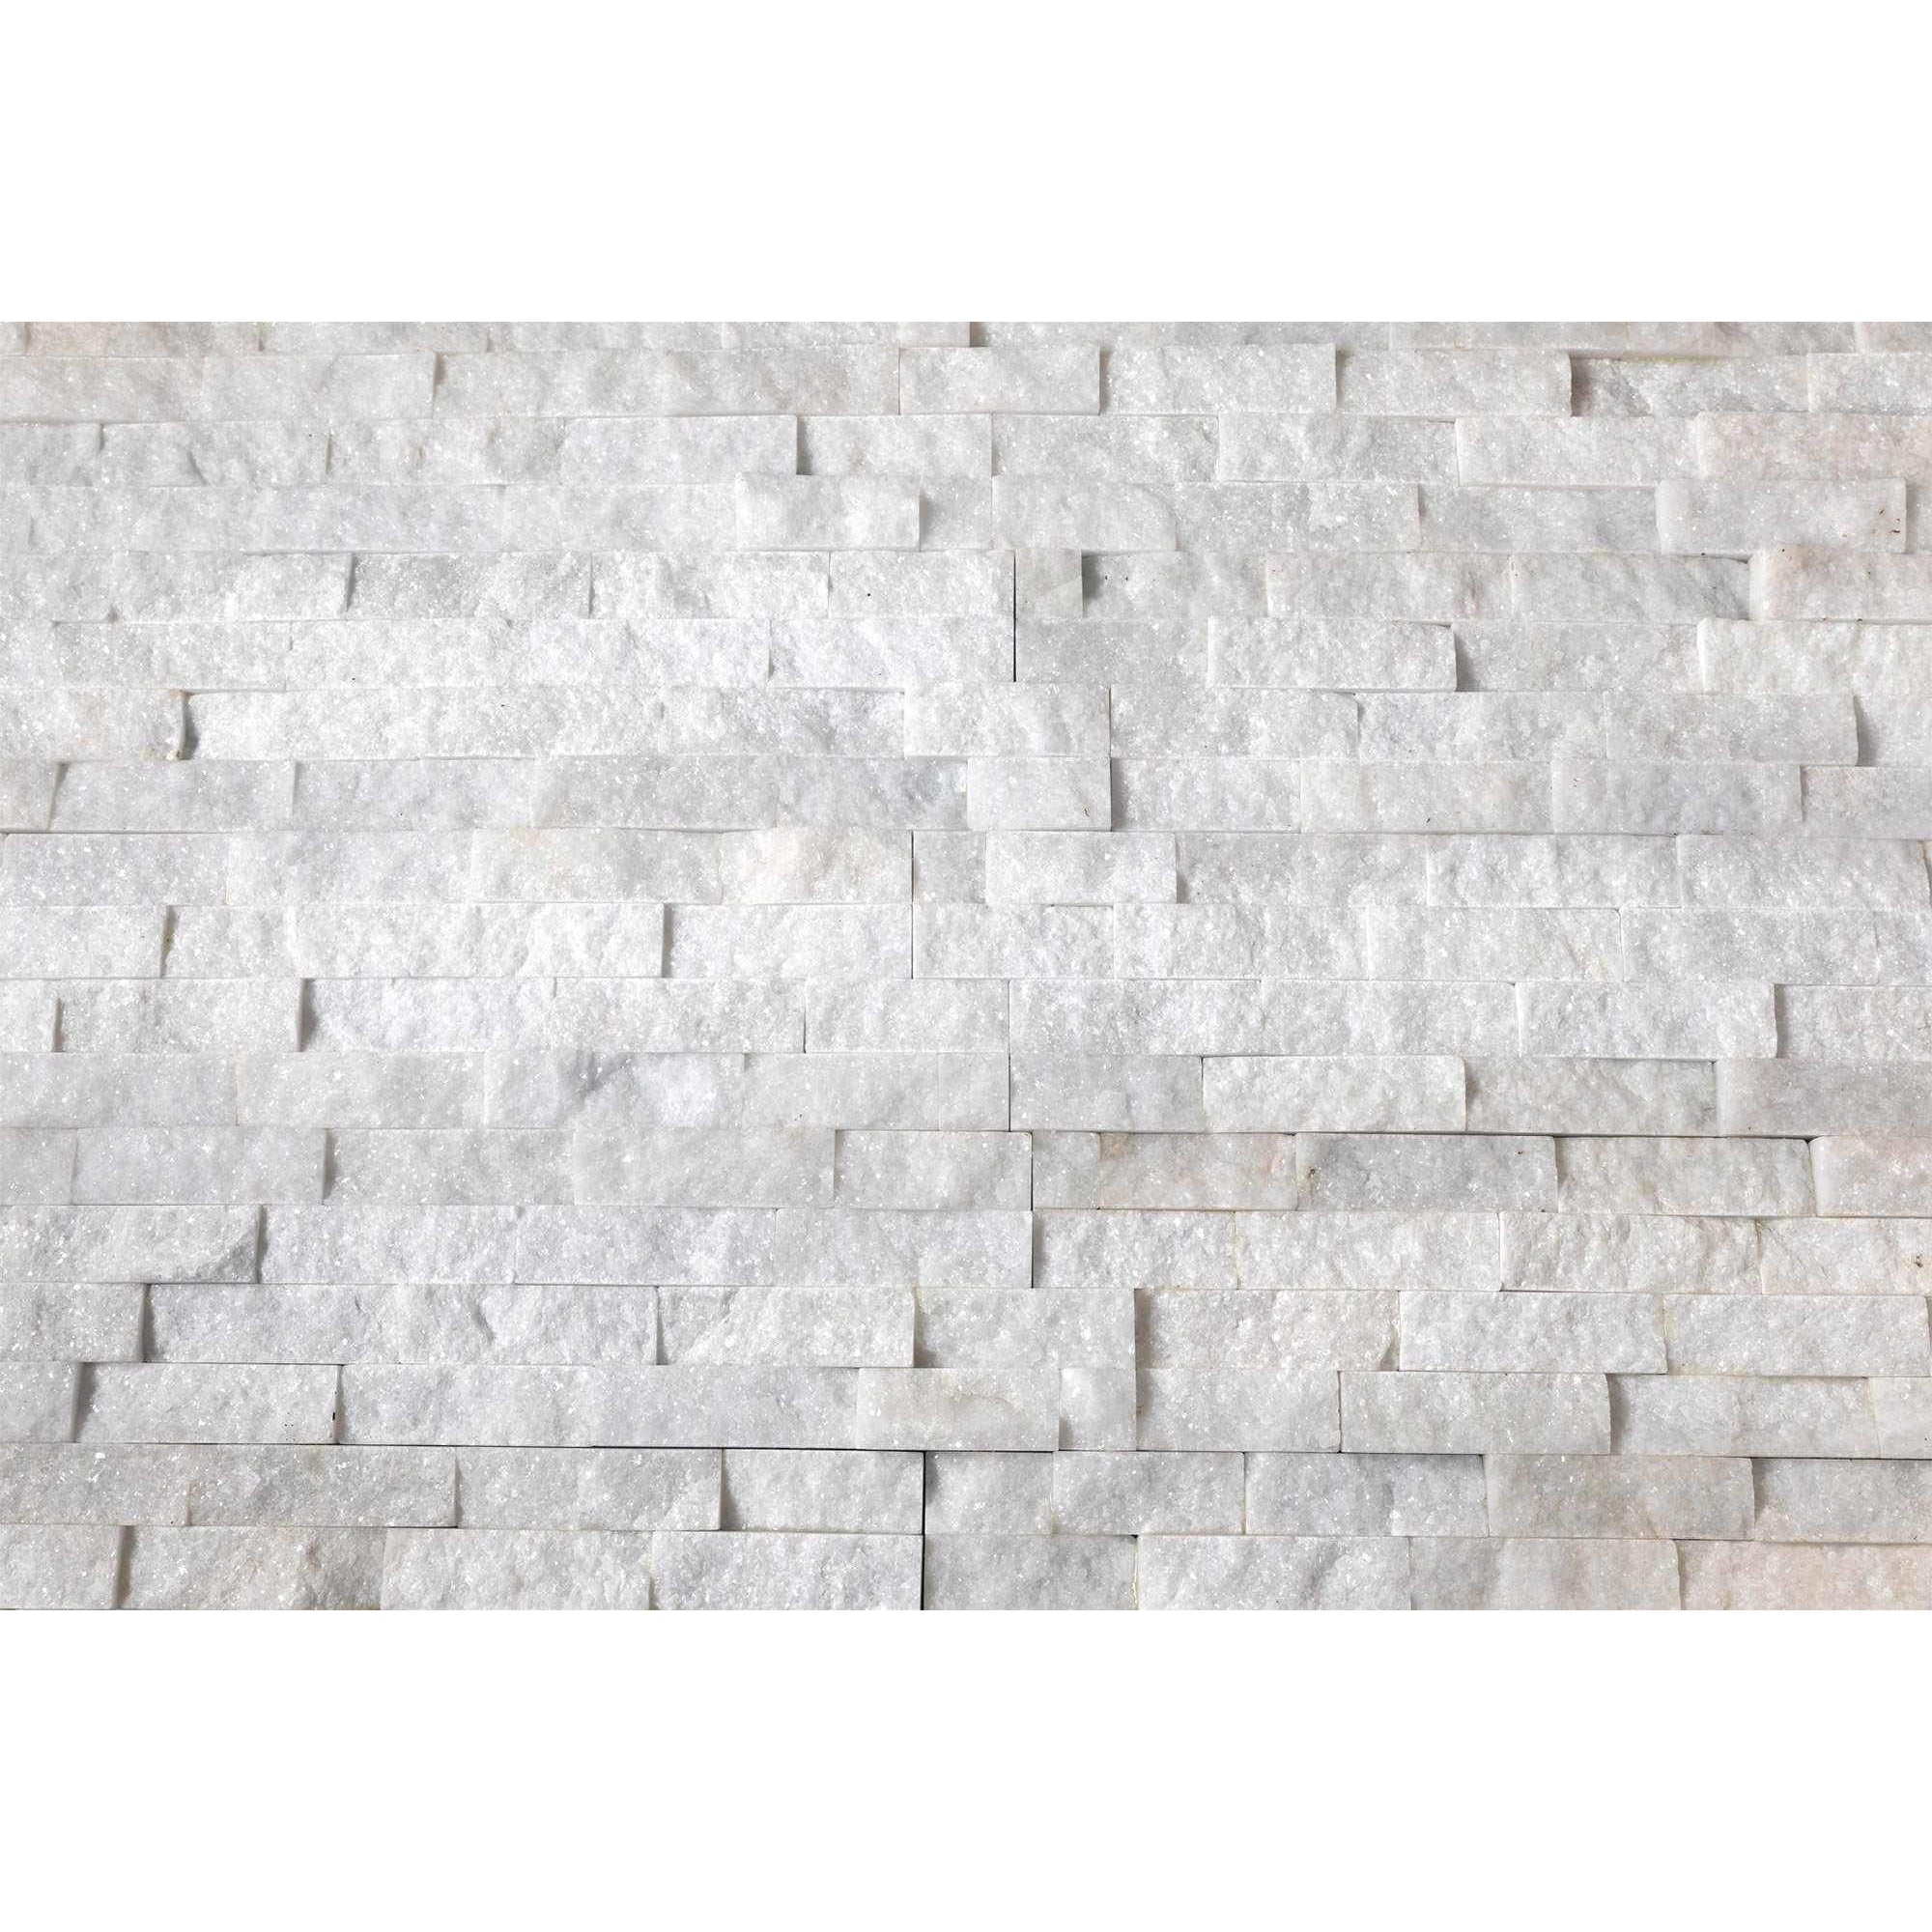 Natural Stacked Stone Feature Wall Cladding Panels - Crystal White